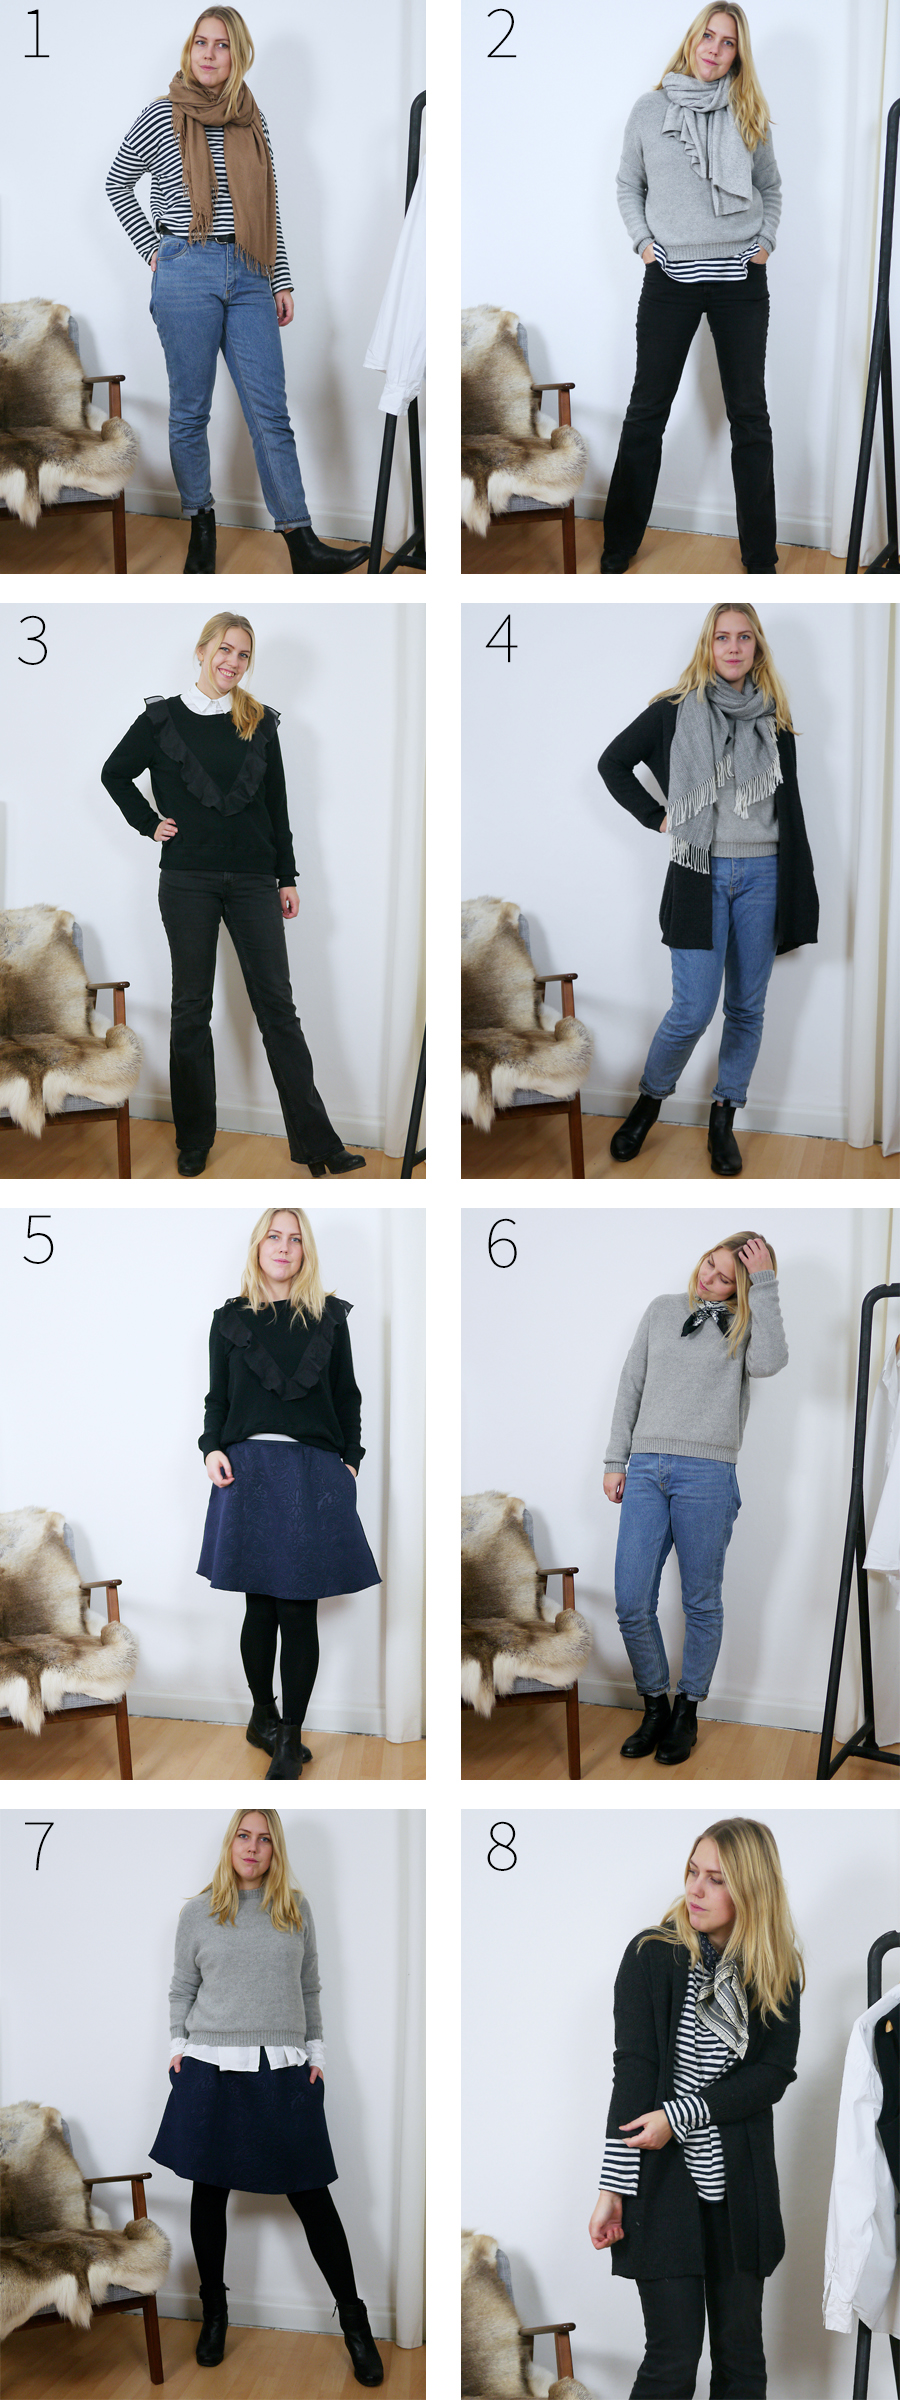 bedremode winter10x10 alle outfits